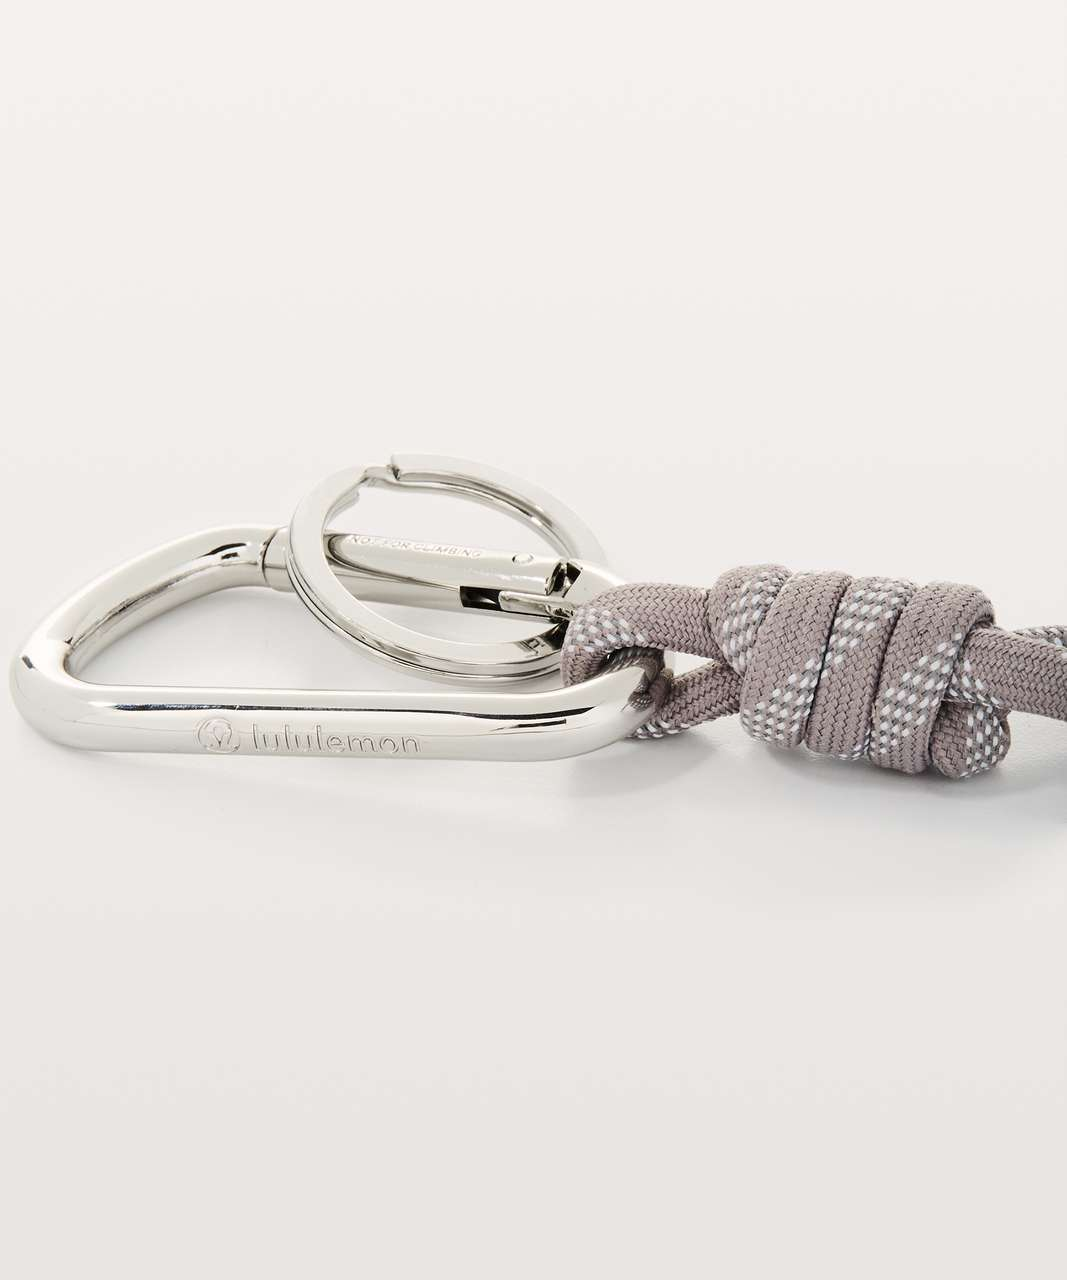 Lululemon You Hold The Key Chain - Dark Chrome